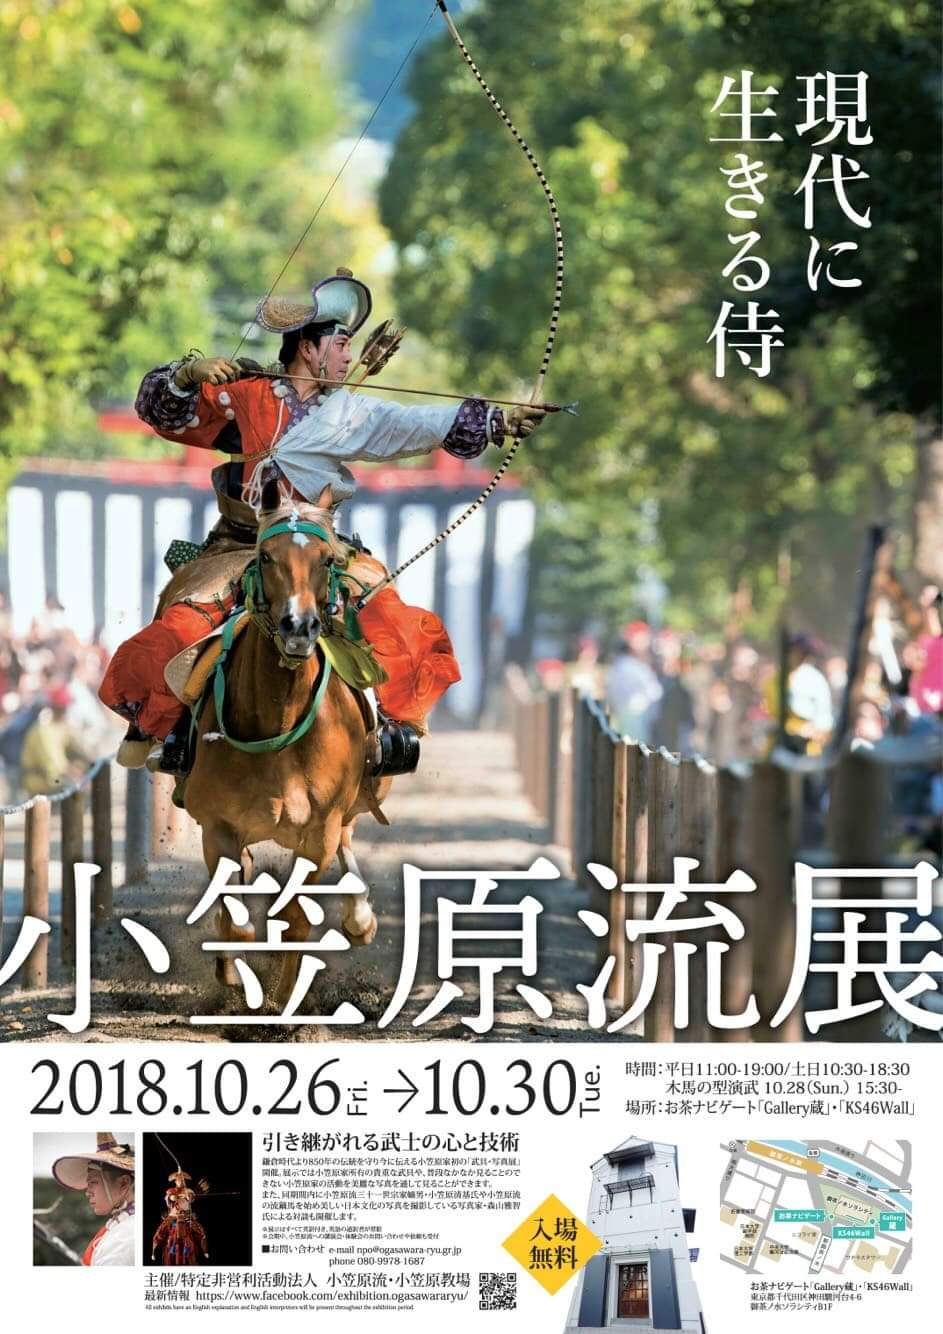 【終了】小笠原流展 Ogasawara-ryū ~Living the Way of the Samurai~